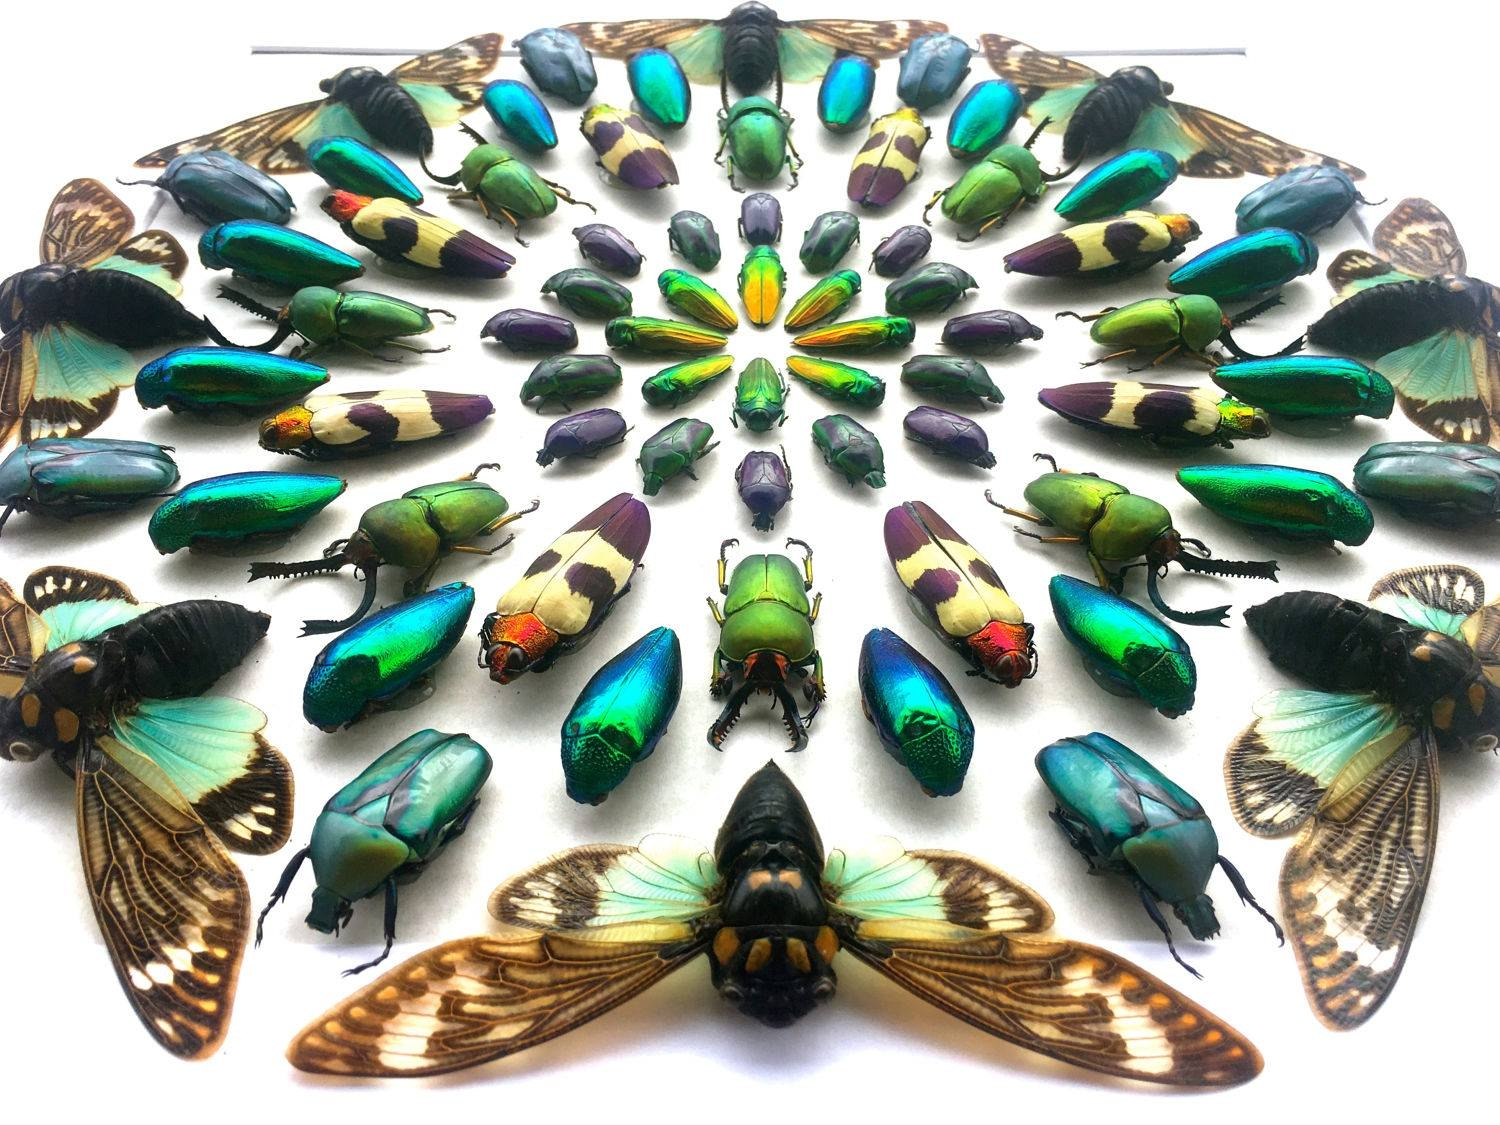 Shadow Box Art Real Taxidermy 3D Wall Art Large Artwork Cool For Most Current Insect Wall Art (View 20 of 30)